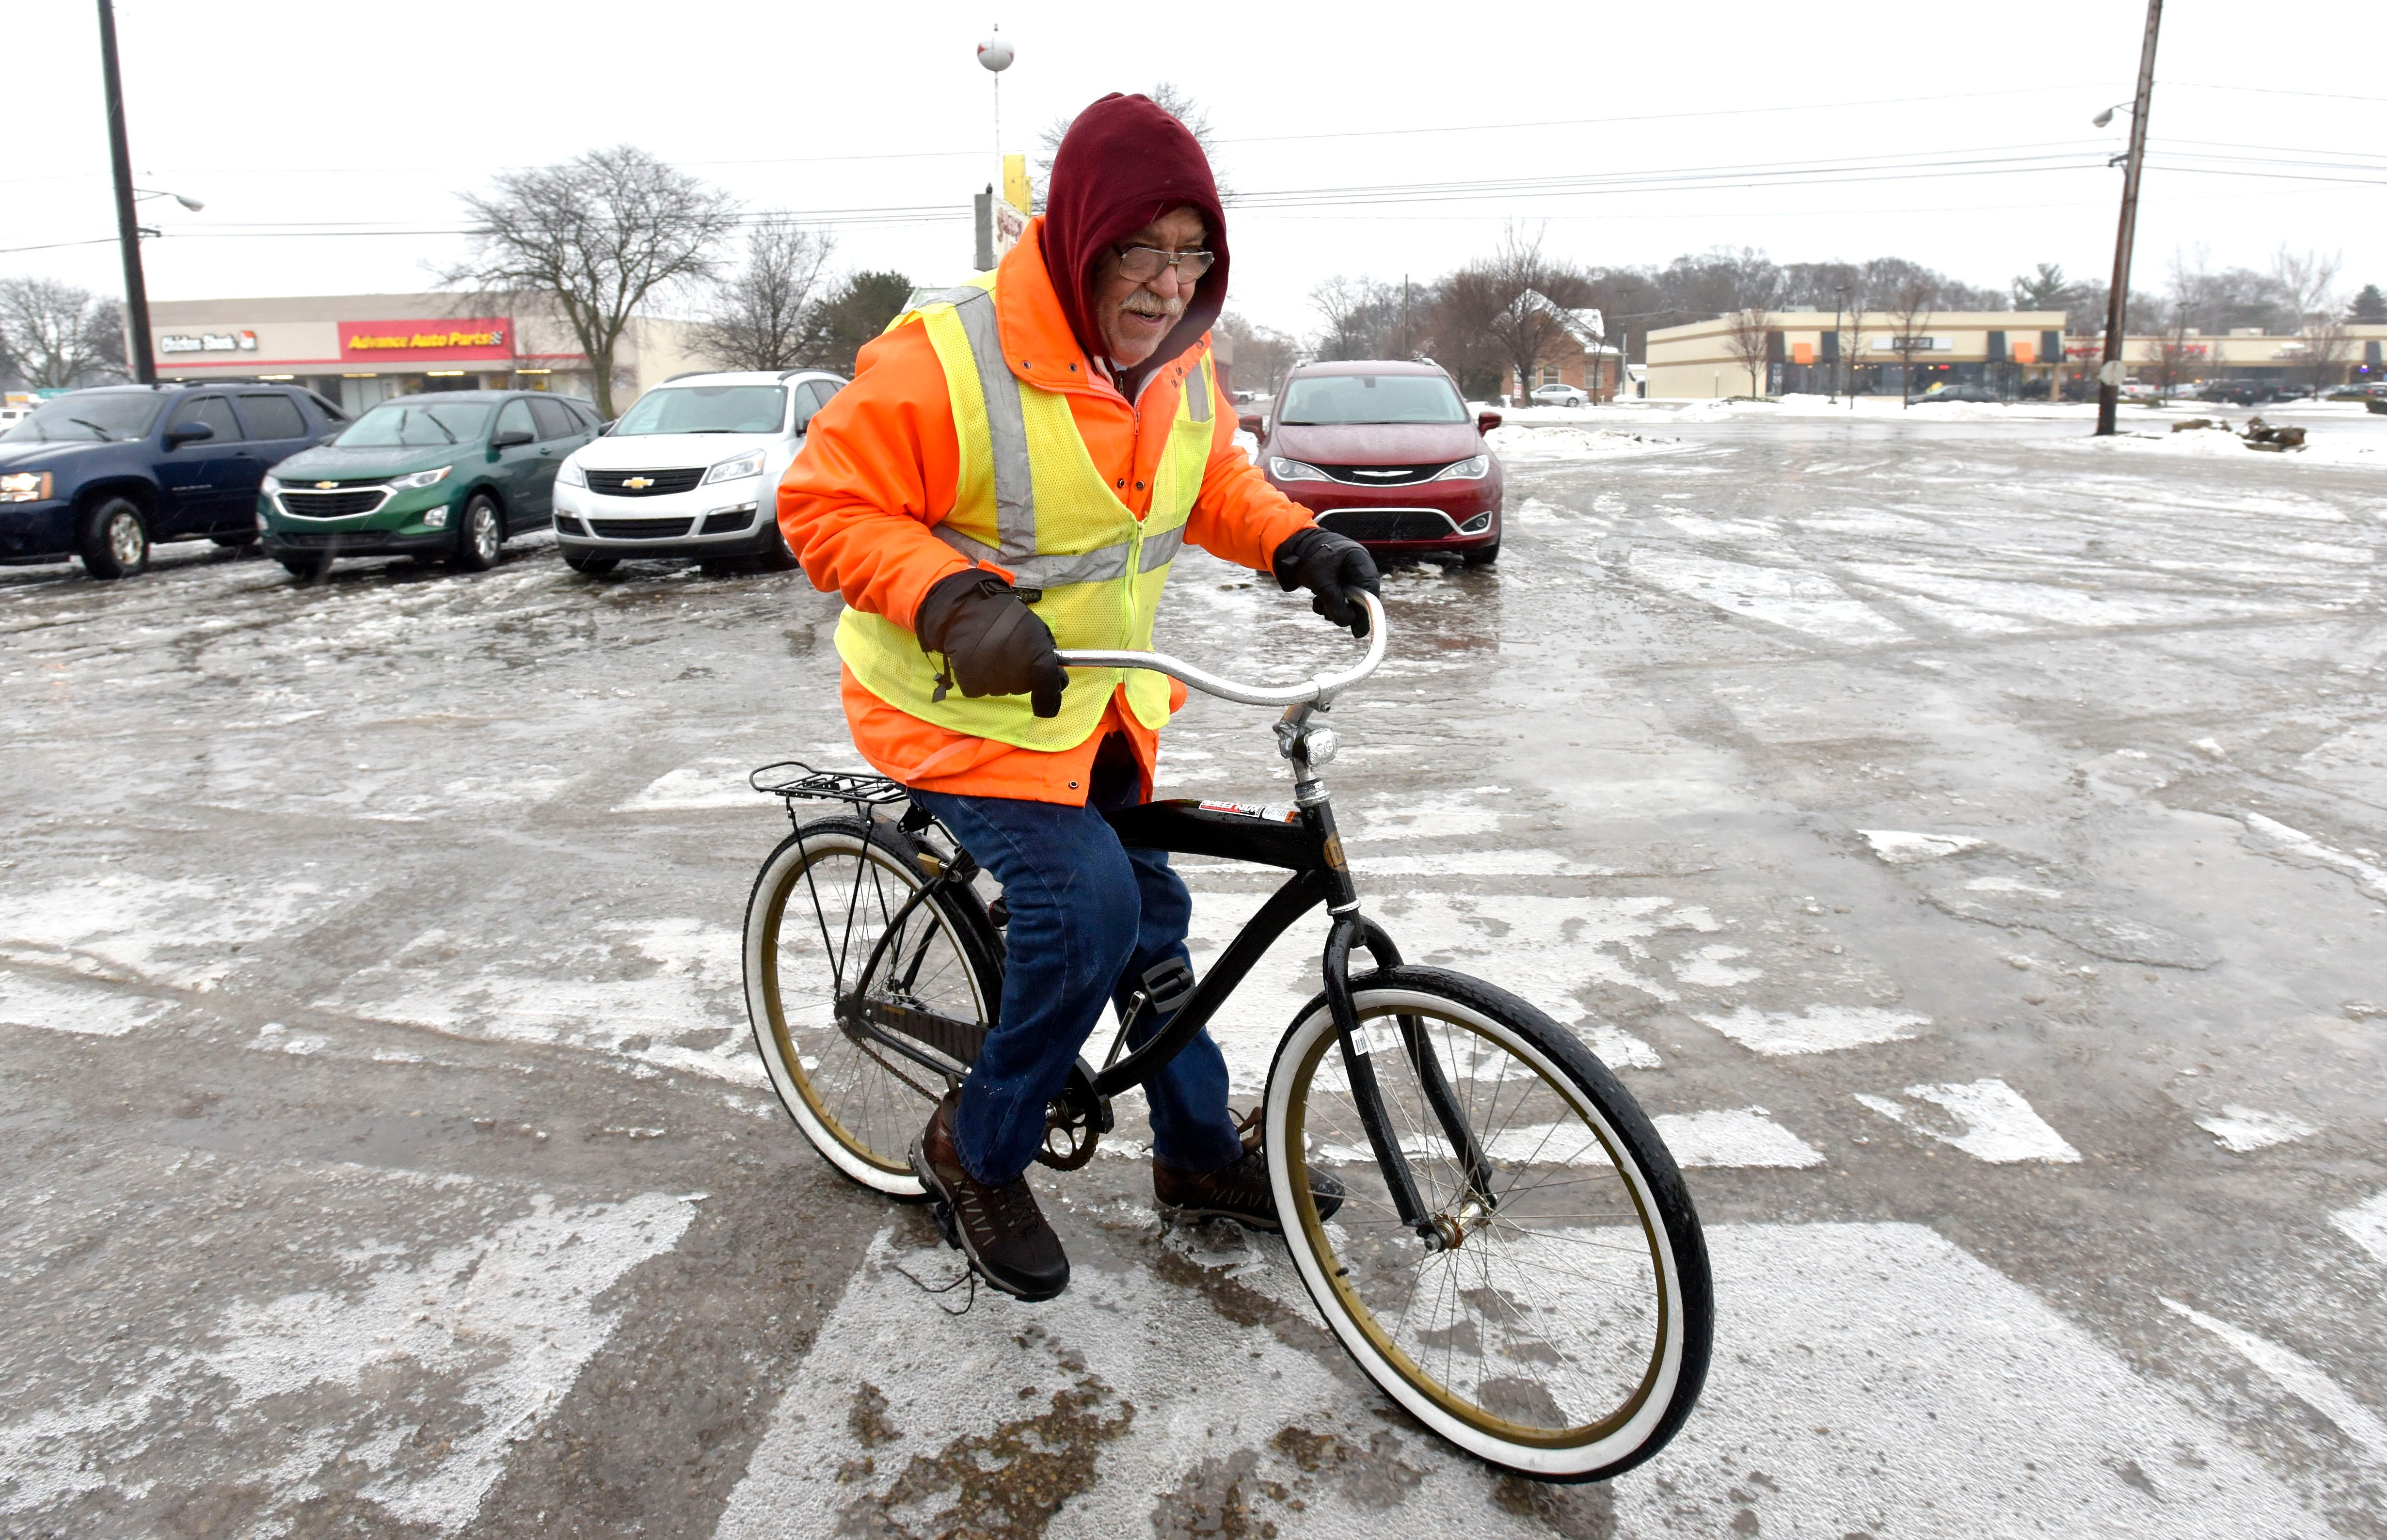 Mark 'Rocky' Szcepanski,' 62, of Shelby Twp., navigates icy sidewalks on the way to the Shelby Lanes bowling alley  Jan. 23, 2019.